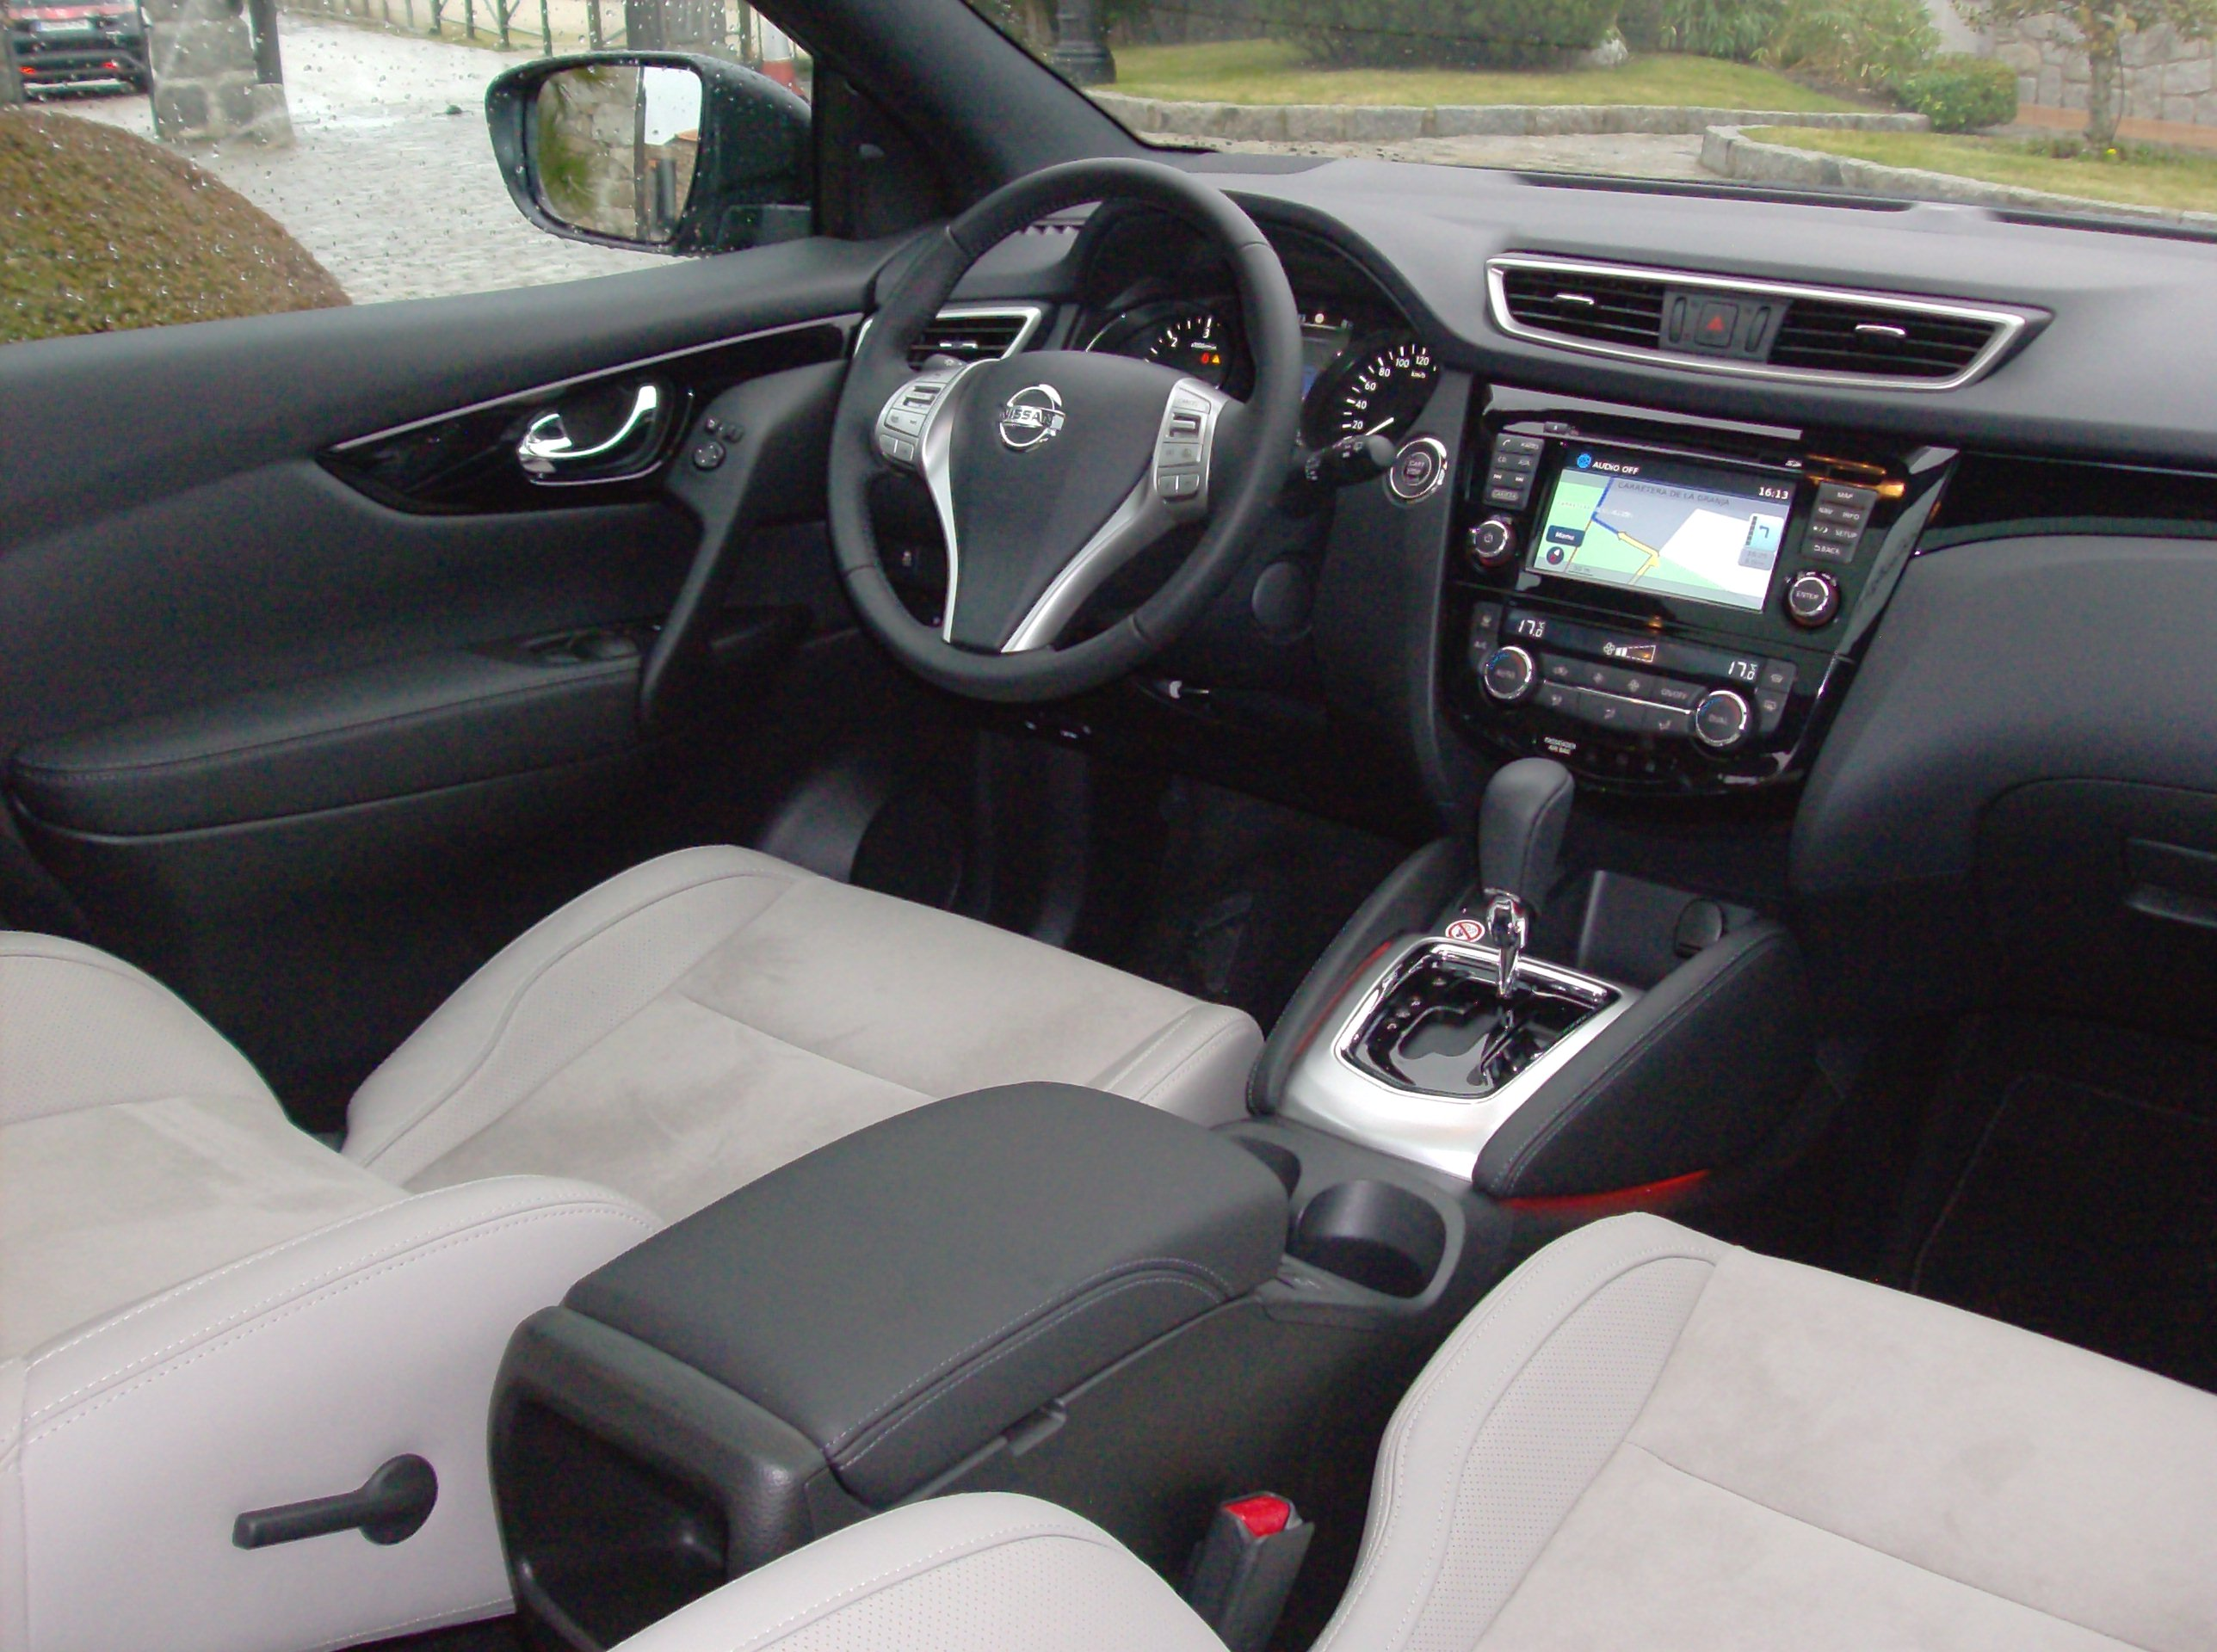 fantastic-design-of-the-grey-seats-ideas-with-black-dash-and-silver-accents-ideas-of-the-nissan-qashqai-2014-interior